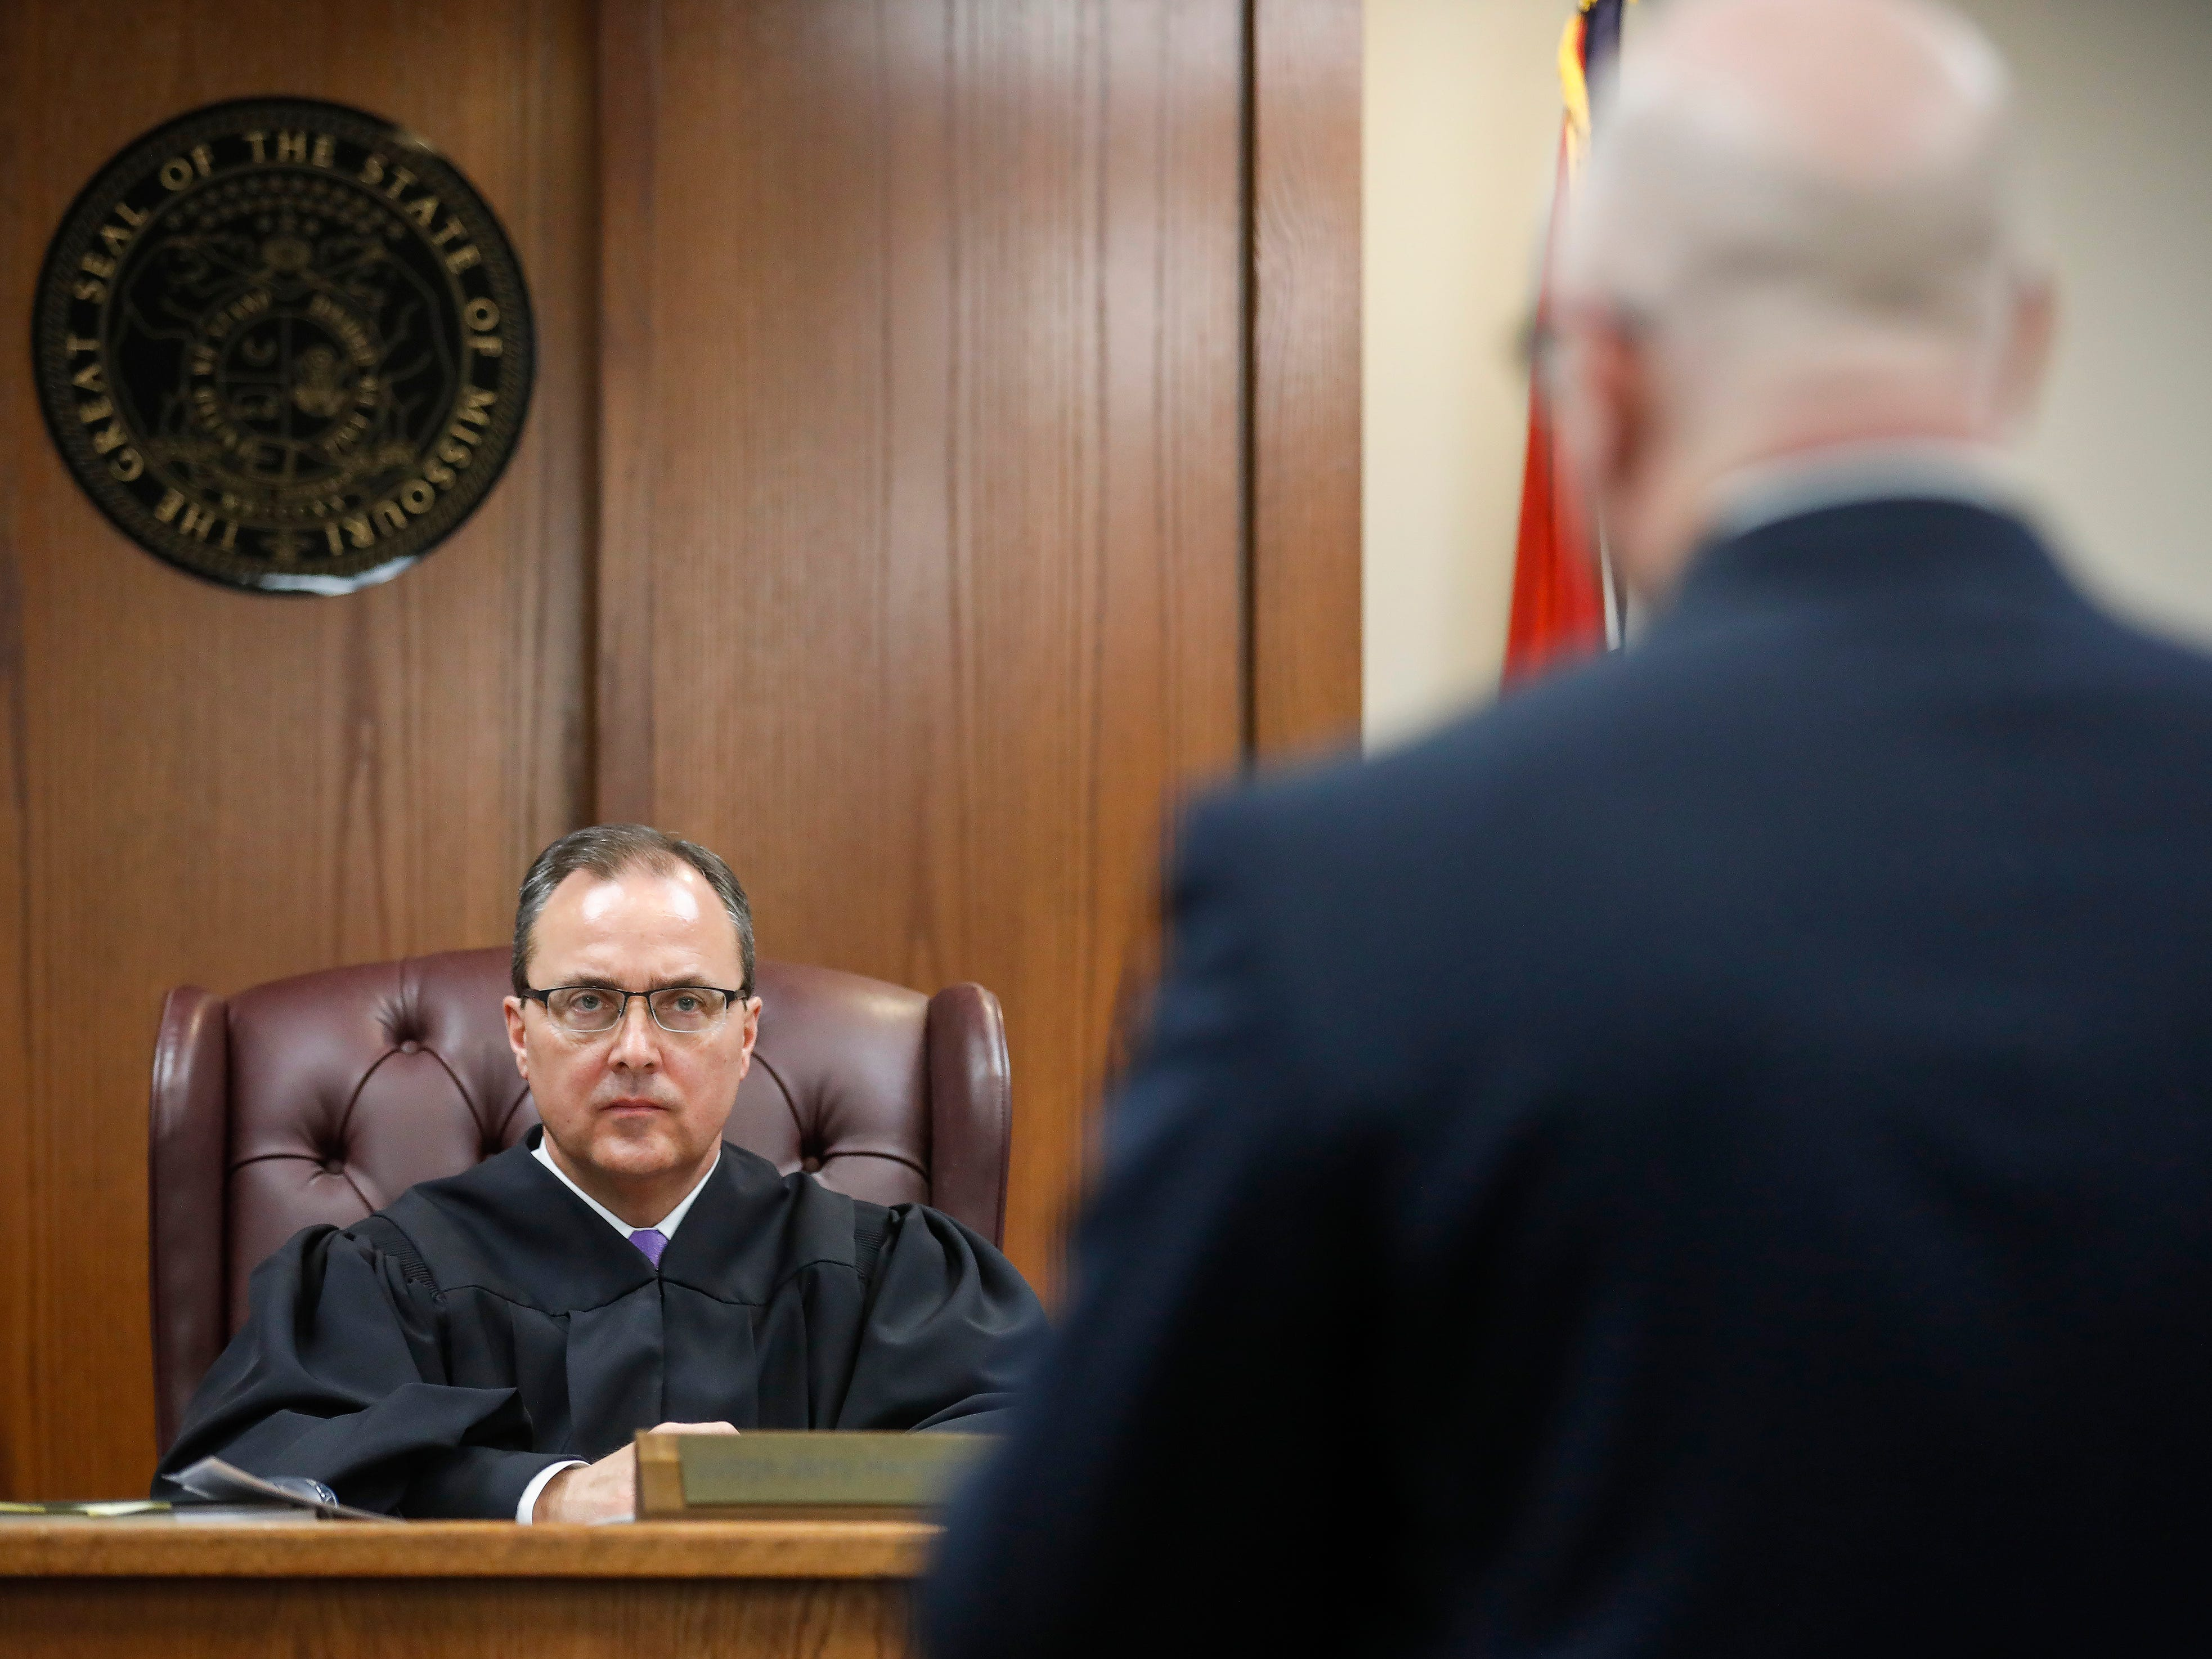 Dorial Green-Beckham's lawyer Tyson Martin, right, delivers his closing argument in front of Judge Jerry Harmison during a probation violation hearing in a prior DWI case on Friday, March 8, 2019.